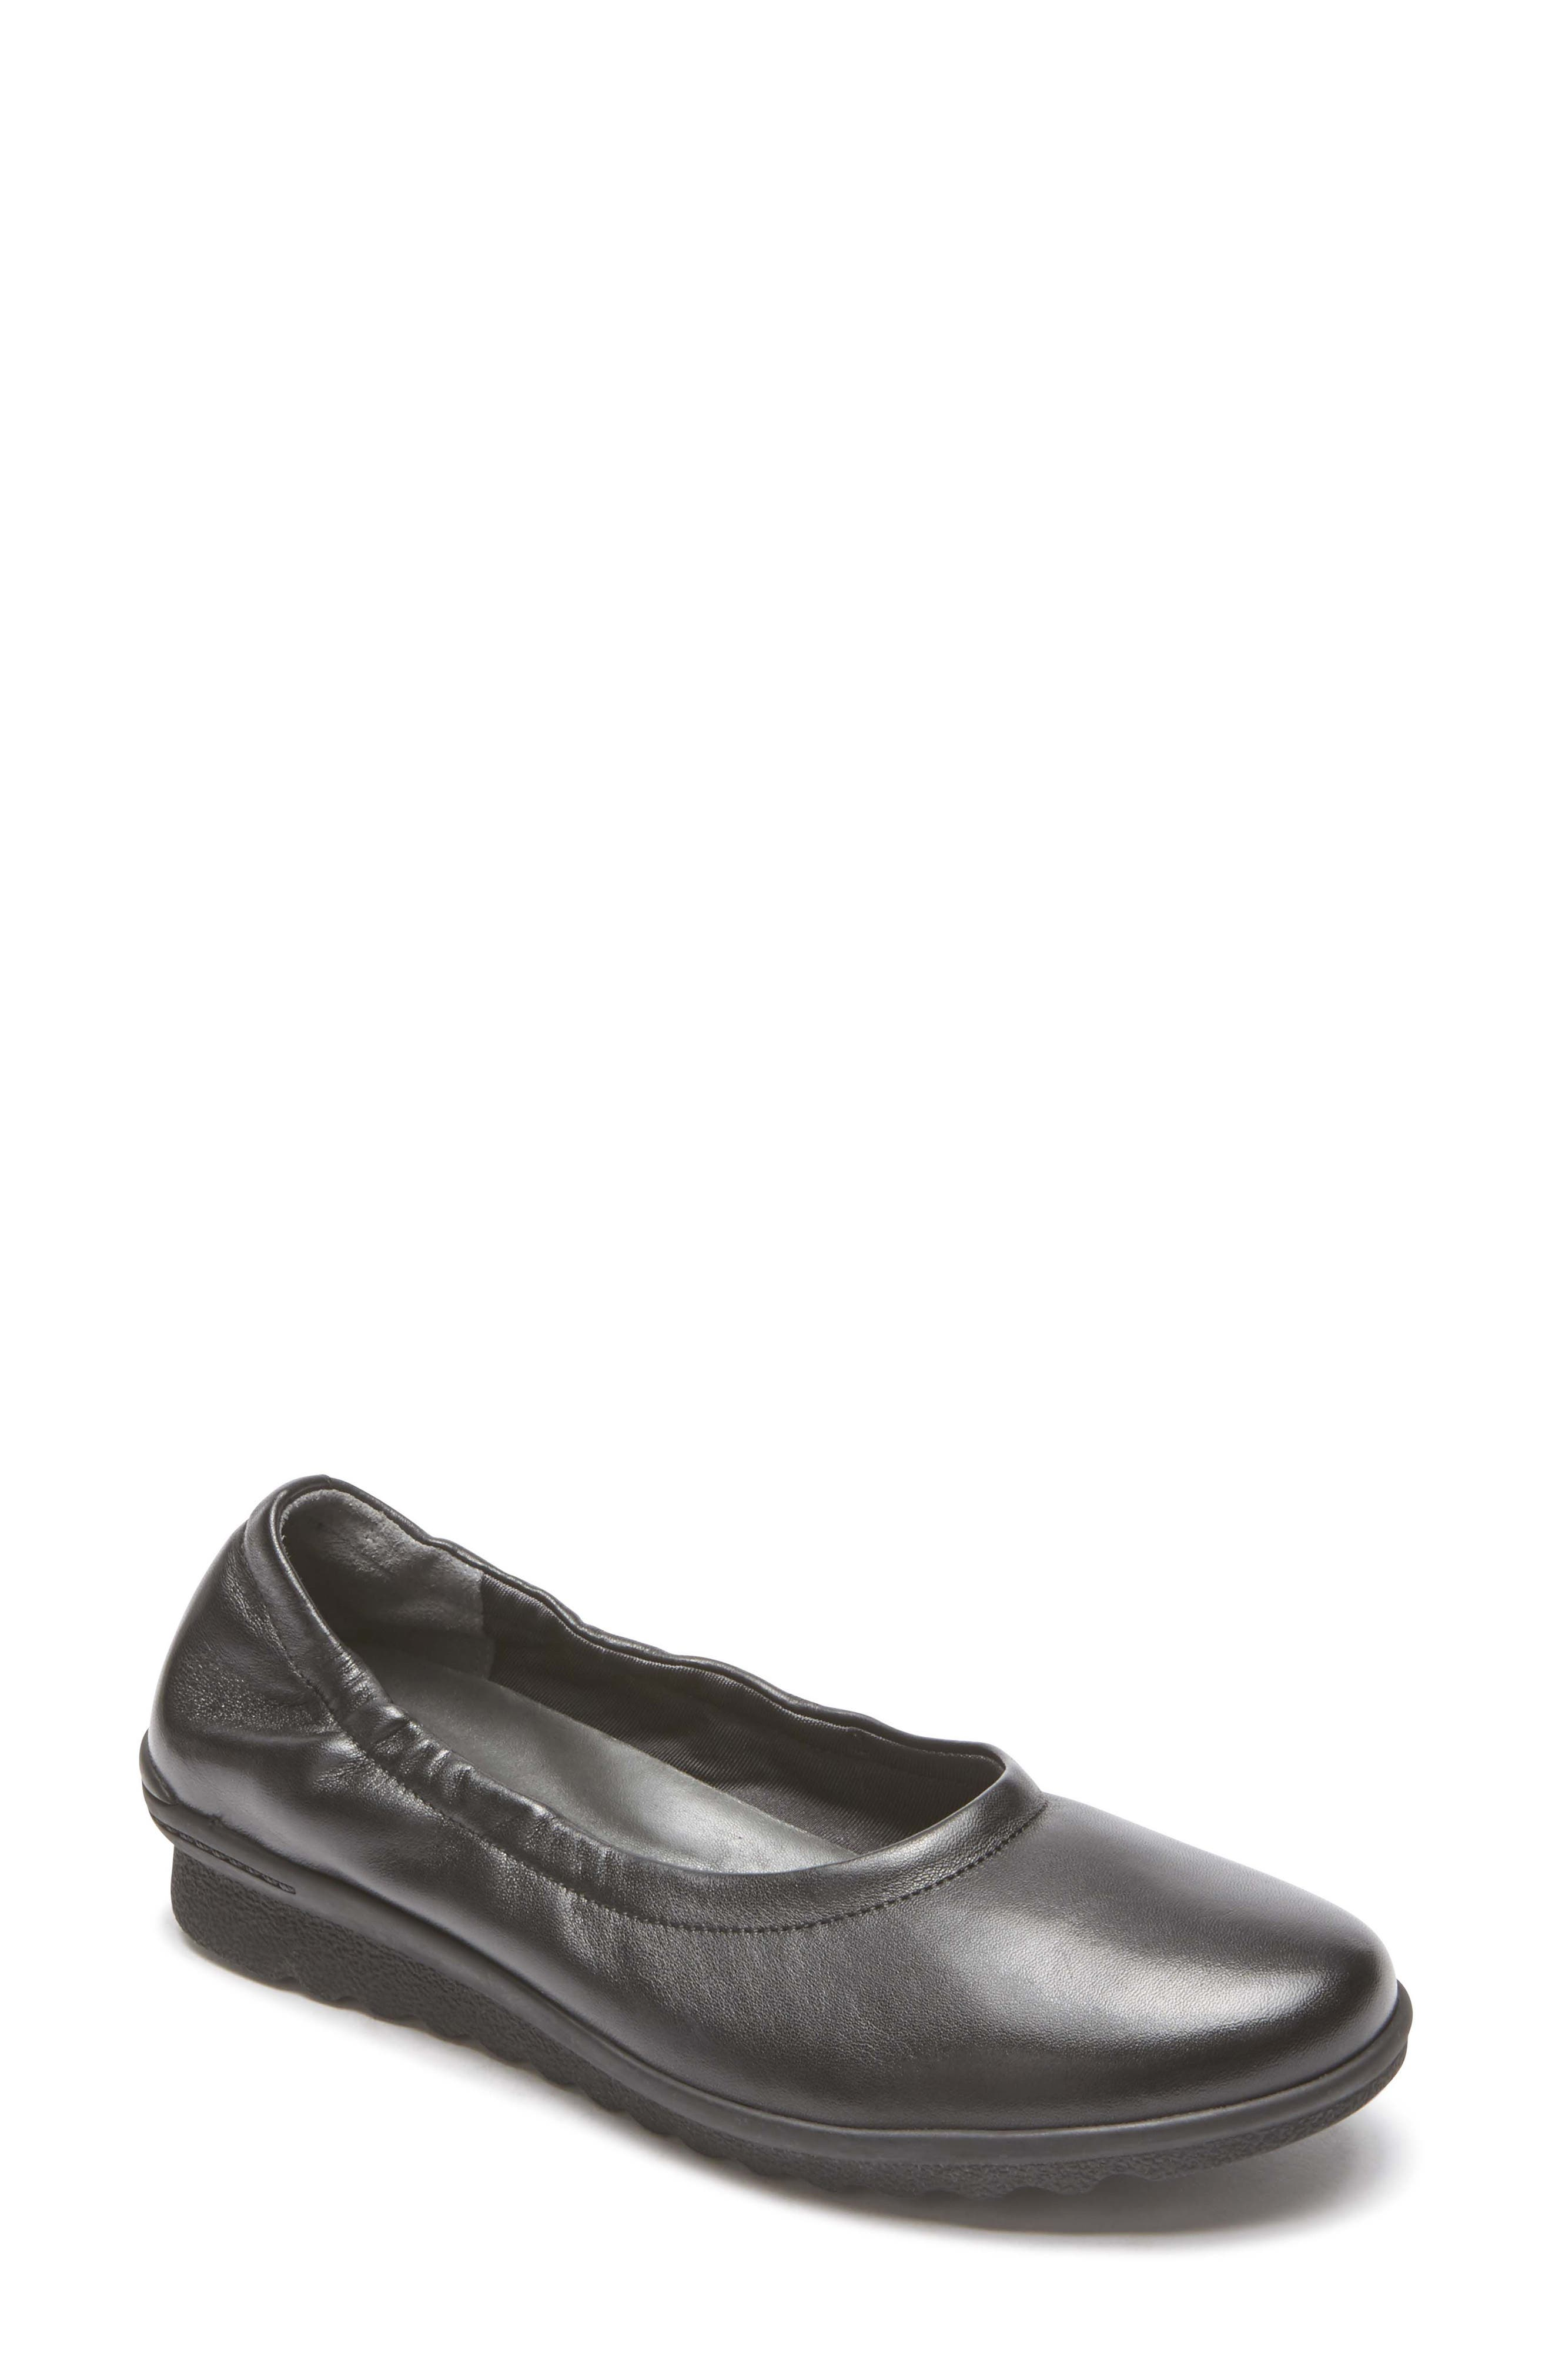 Chenole Ballet Flat,                         Main,                         color, BLACK LEATHER